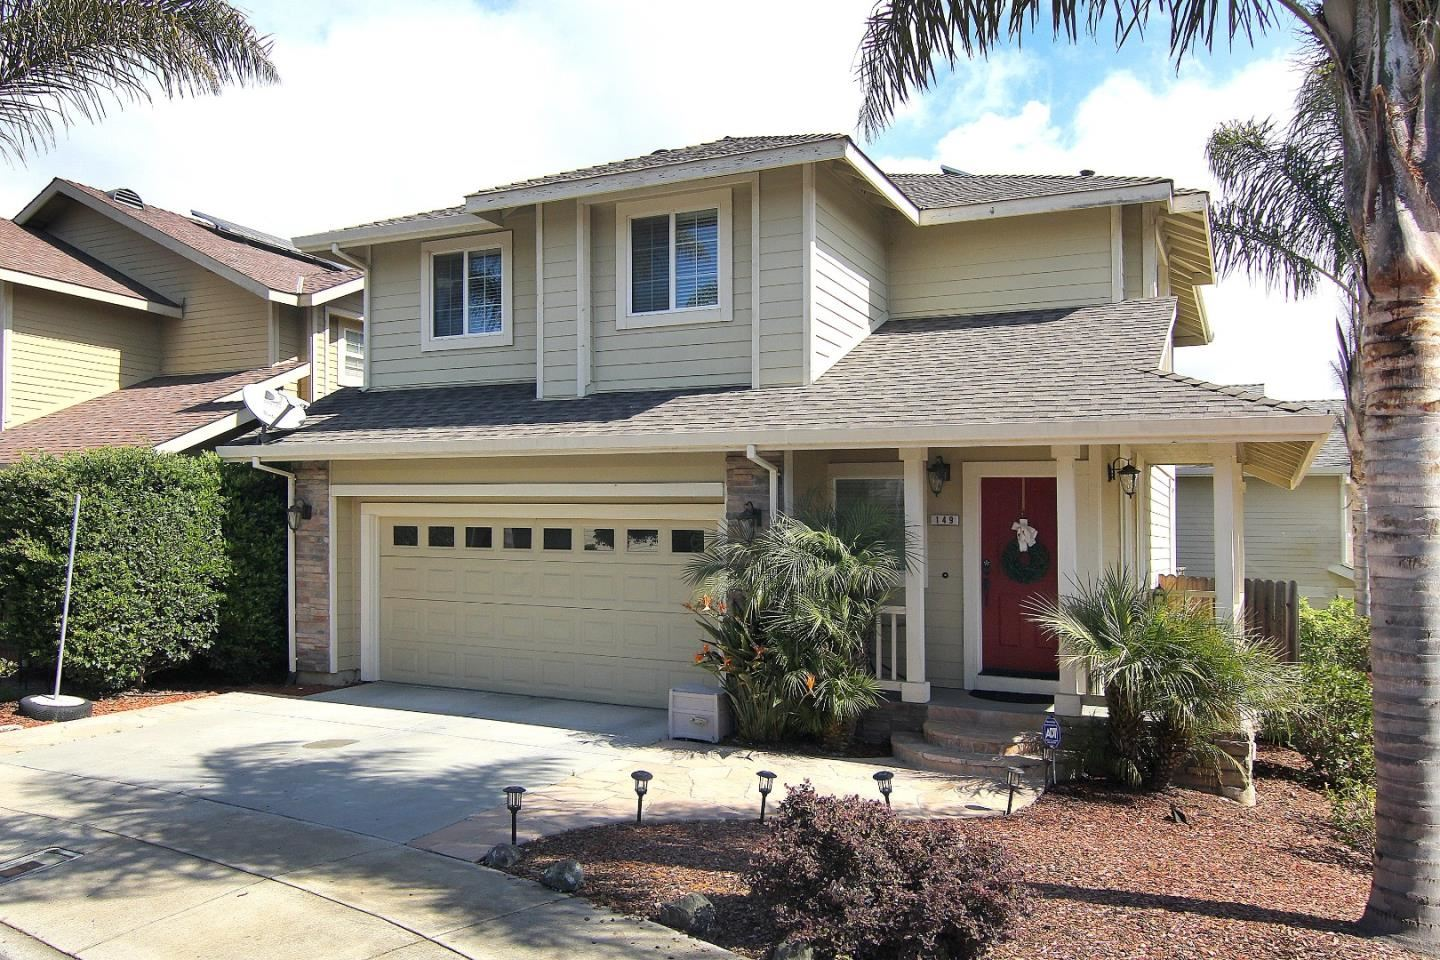 149 Cherry Blossom DR, Freedom, CA 95019 - #: ML81787798